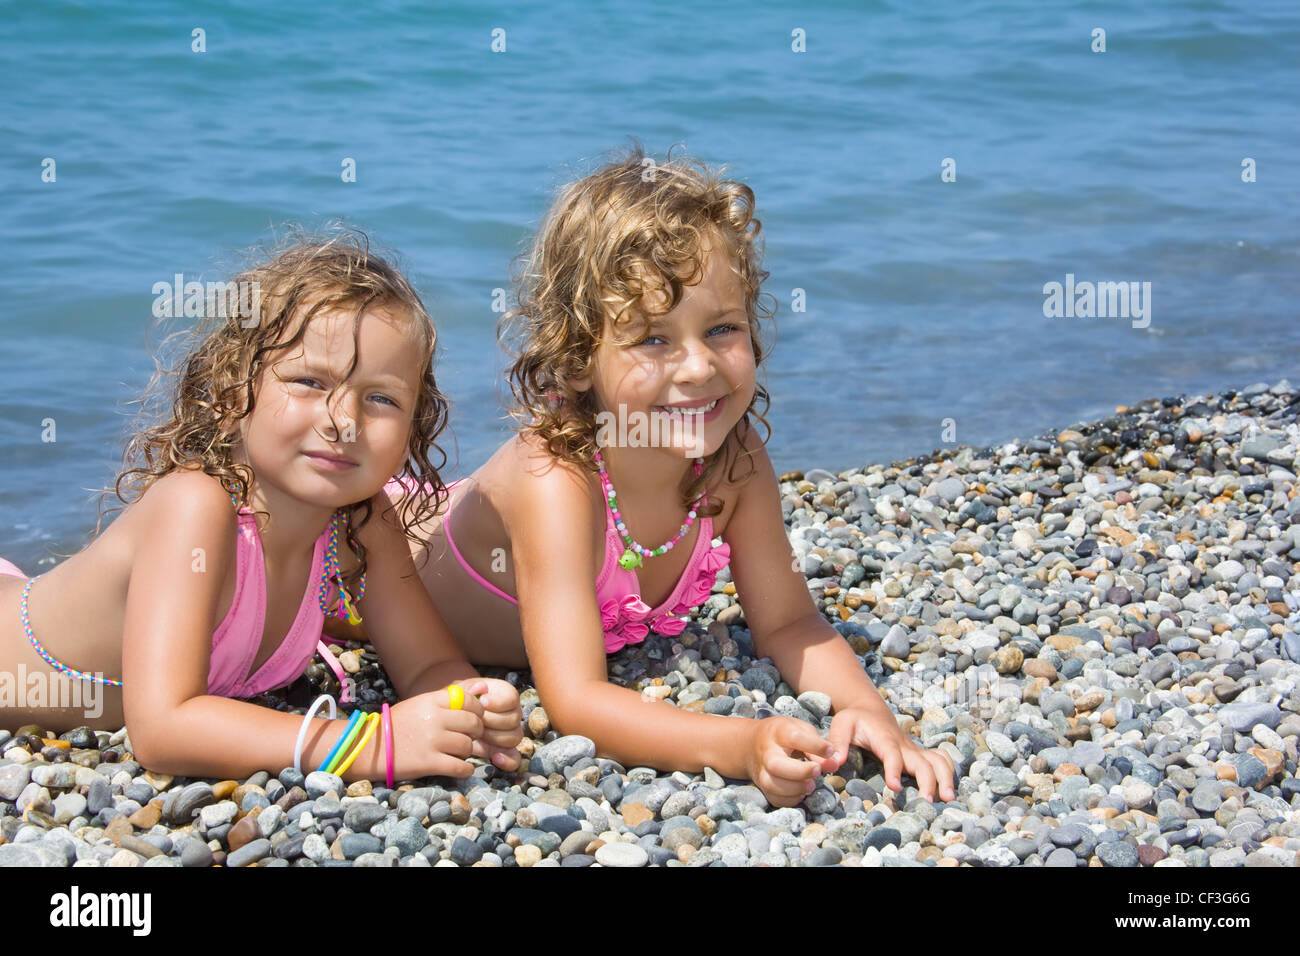 two pretty little girls lying on stony beach near sea - Stock Image